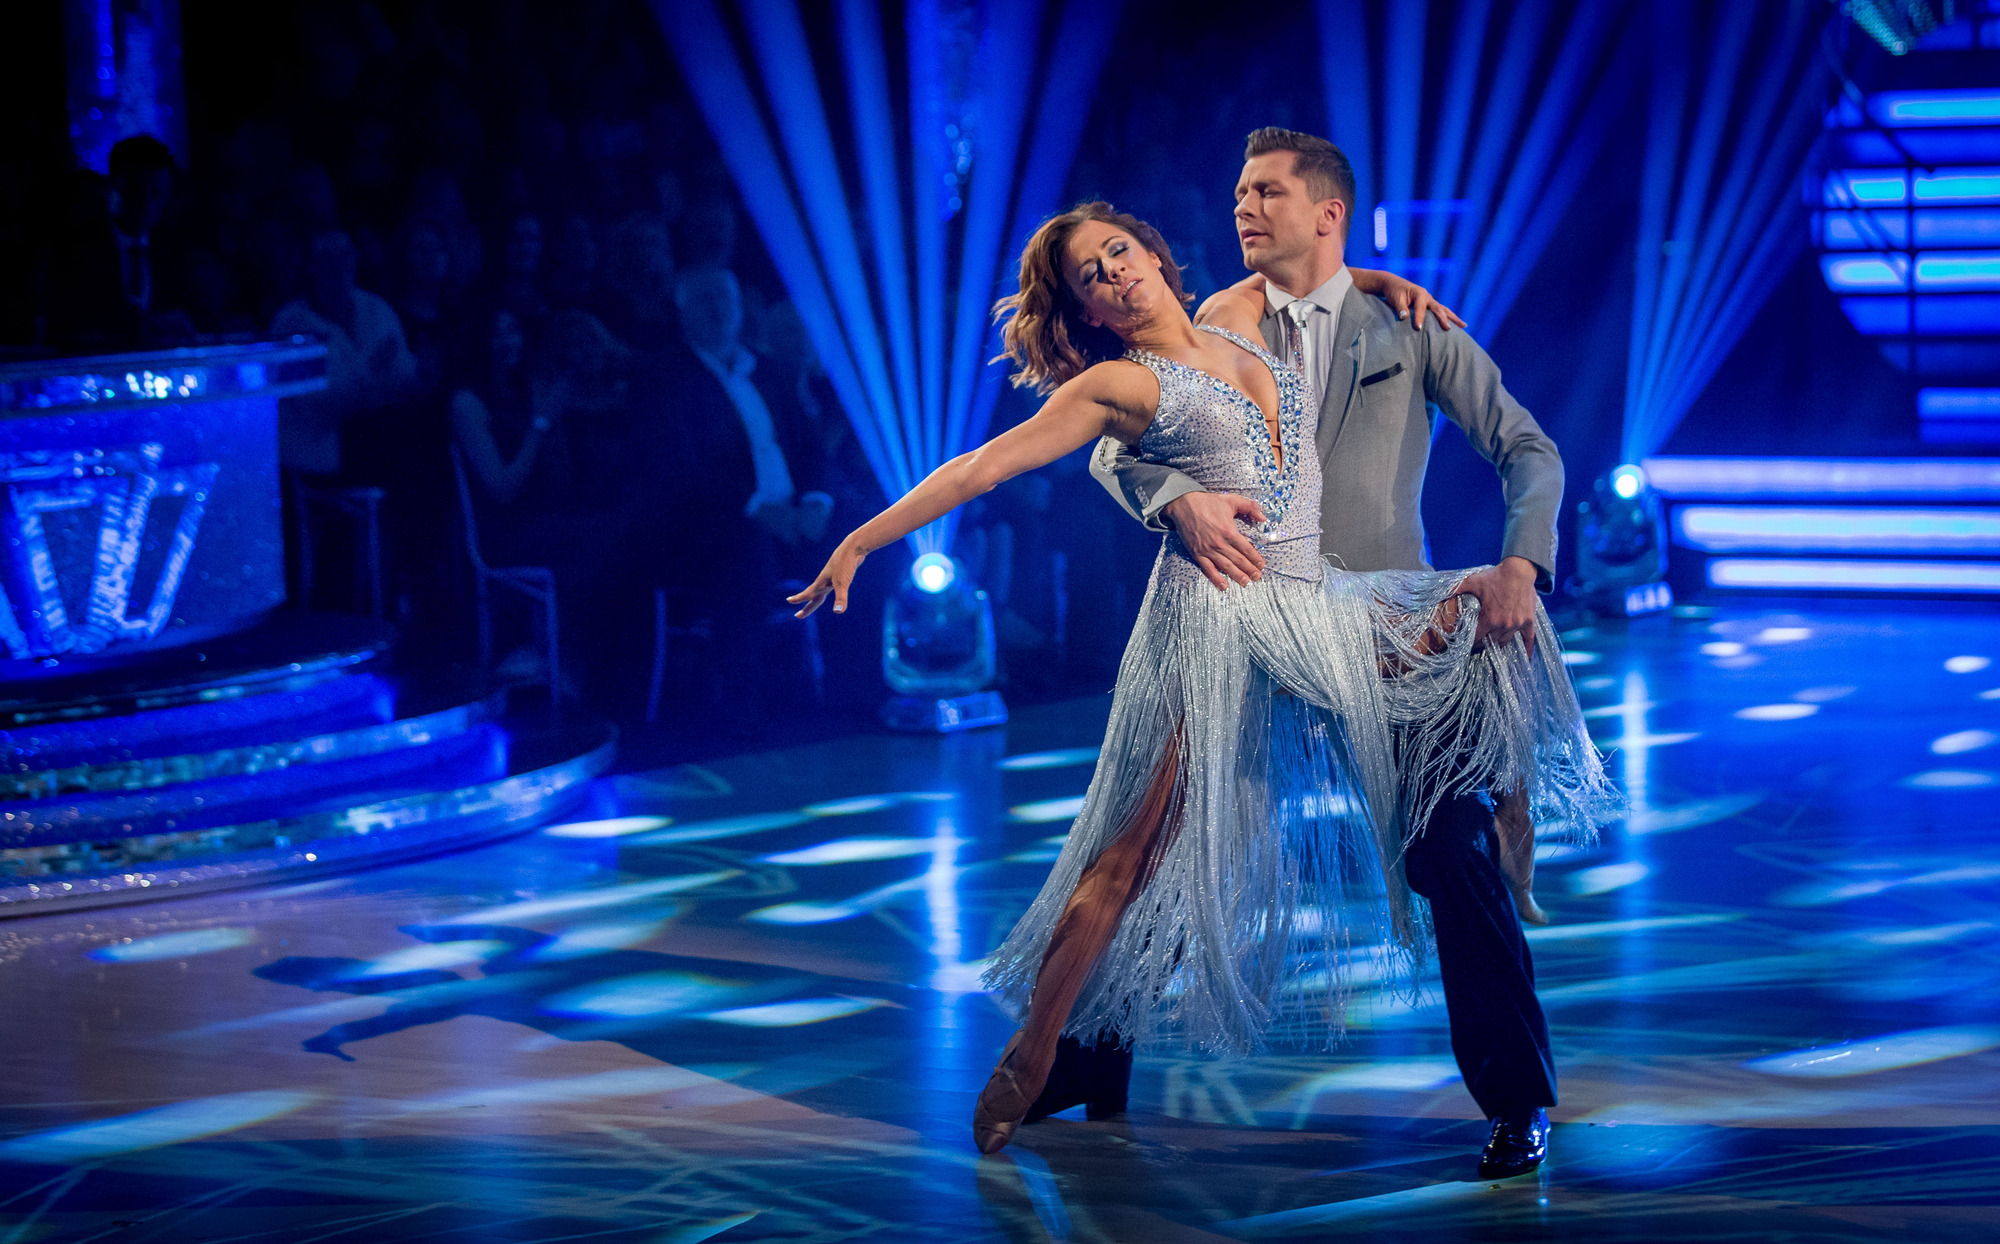 Flawless Caroline Flack bags the first perfect score of Strictly Come Dancing 2014